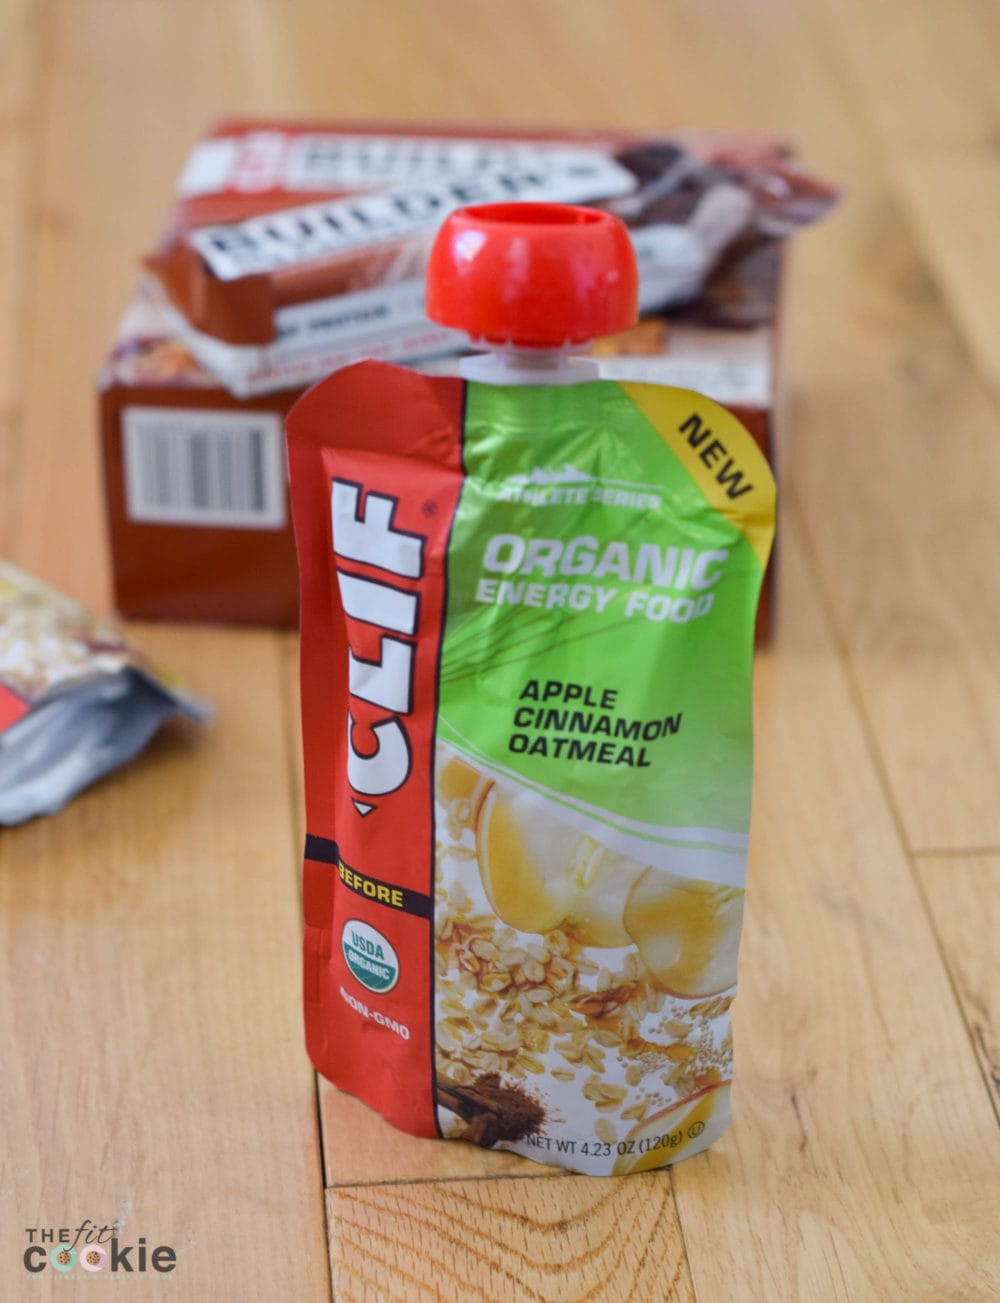 Struggling to stay active? Here's 5 get fit tips for every day energy and fitness with Bob Seebohar and @CLIFBar! - #ad @TheFitCookie #feedyouradventure #fitness